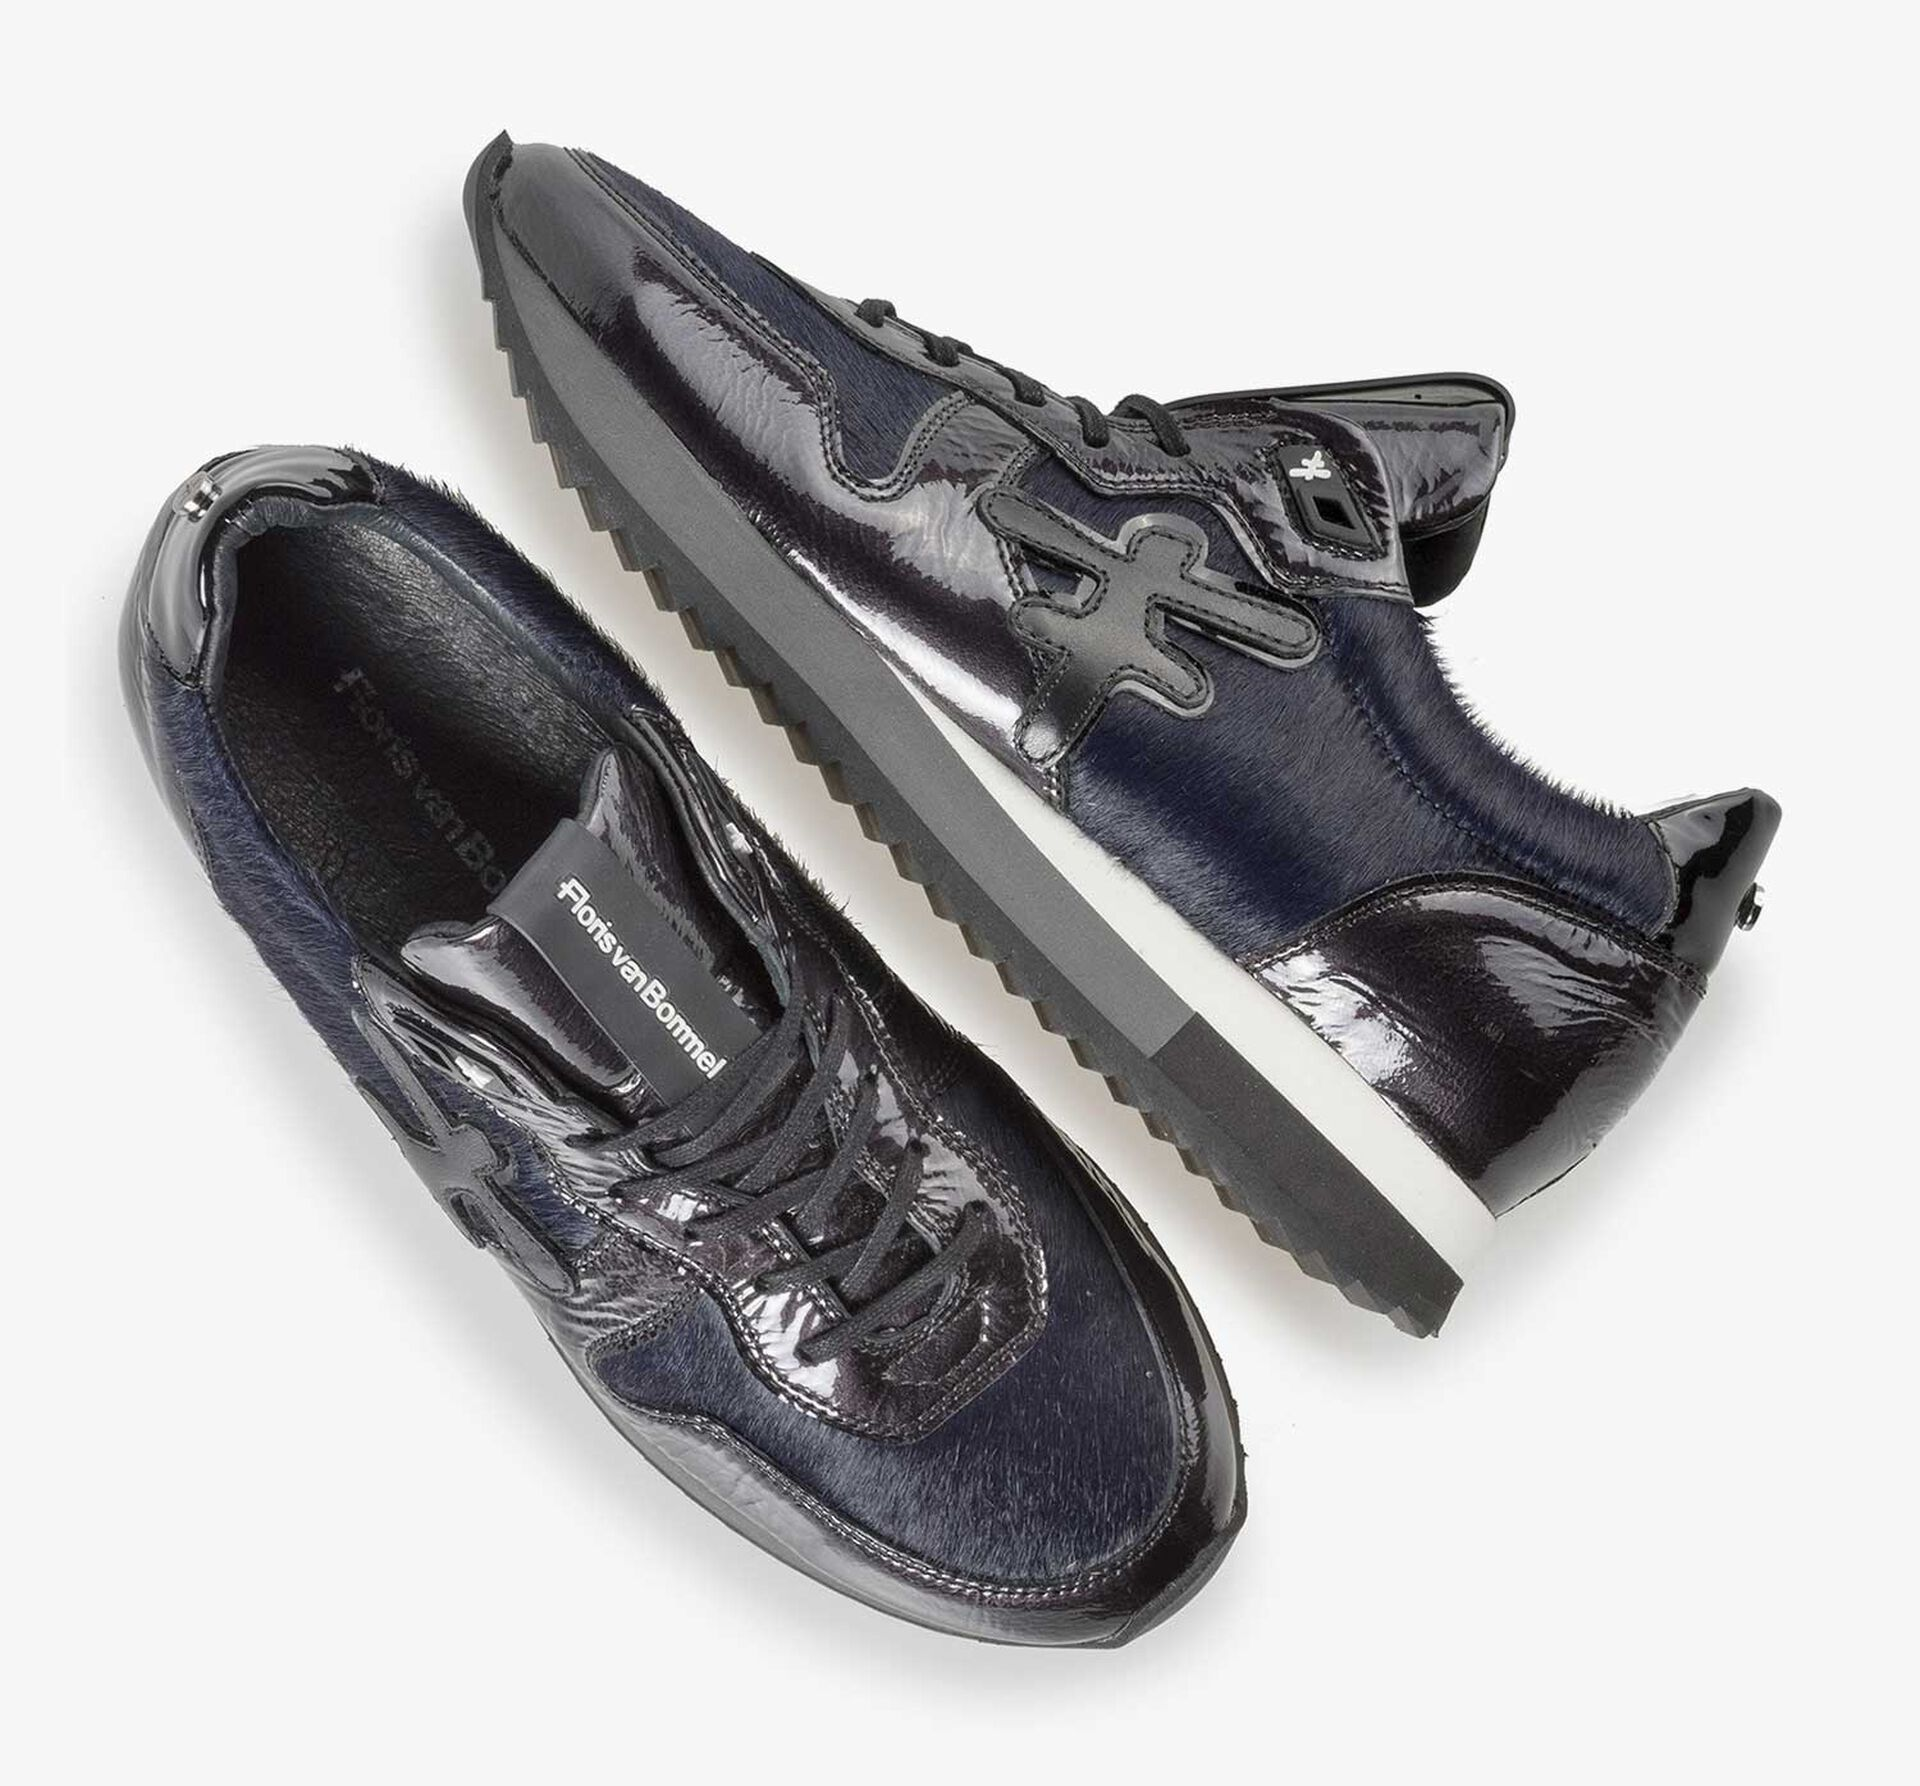 Blue patent leather sneaker with runner's sole